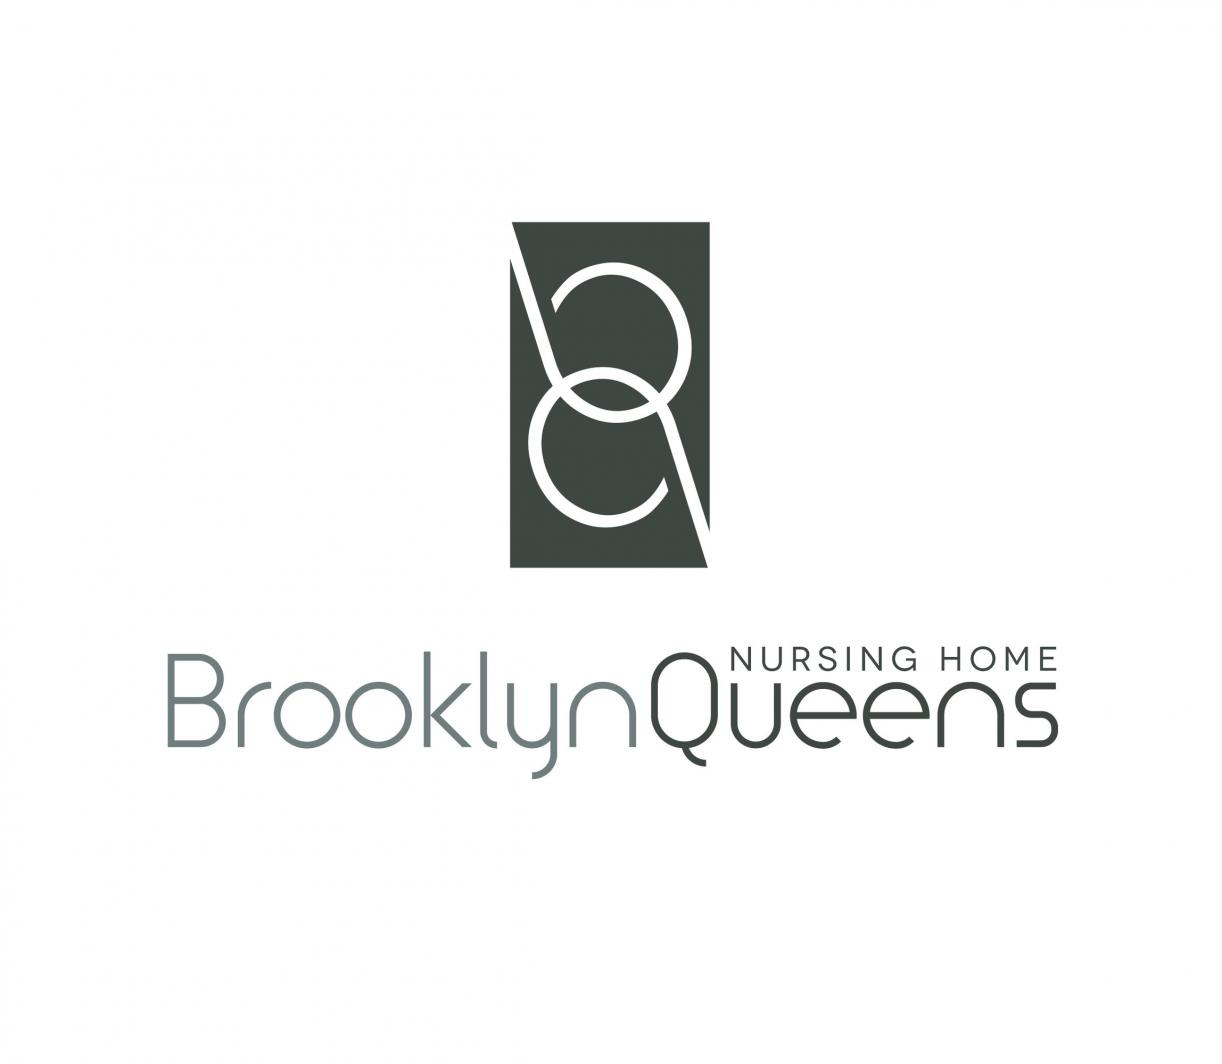 Brooklyn-Queens Nursing Home Logo